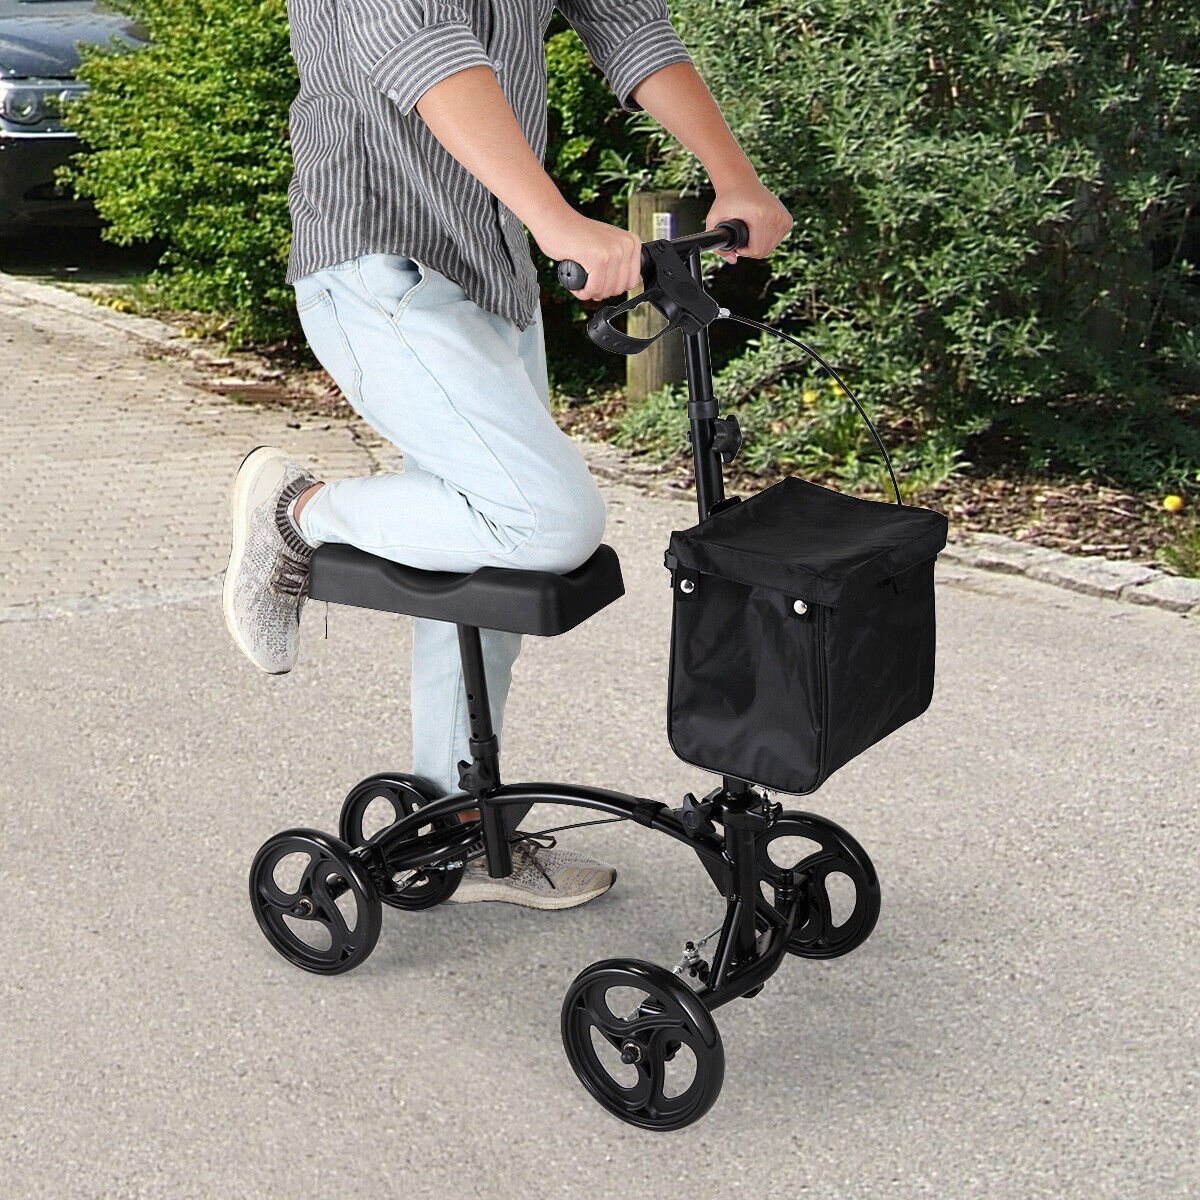 Adjustable Height  Heavy Duty Knee Walker Scooter w/Soft Pad